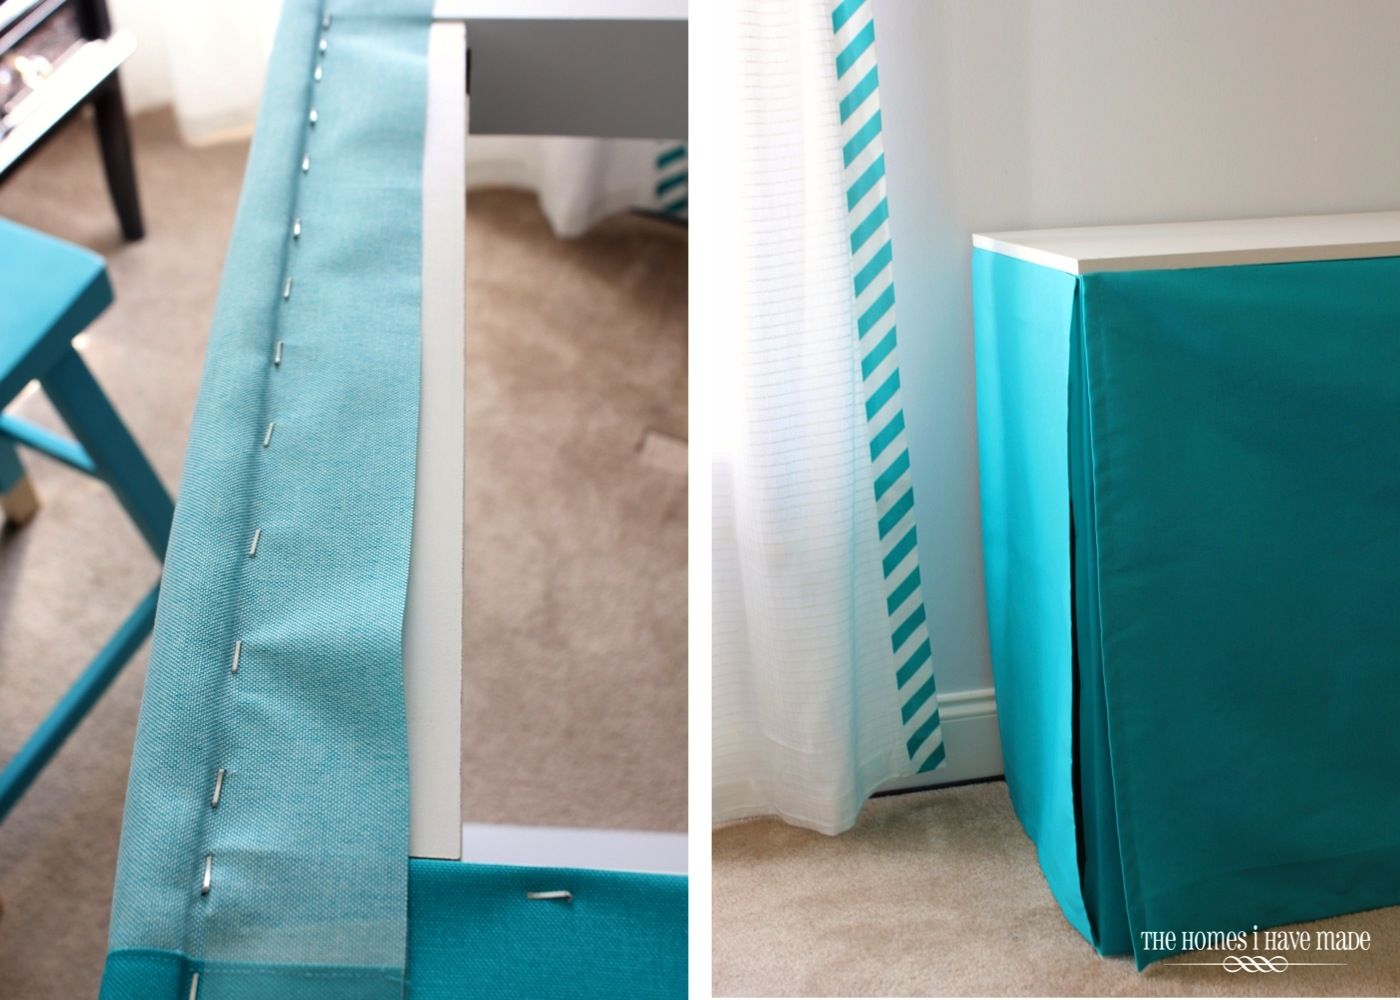 Use A Staple Gun And Fabric To Give A Nice Clean Tailored Table Skirt To  Any Table, Desk Or Bookshelf!